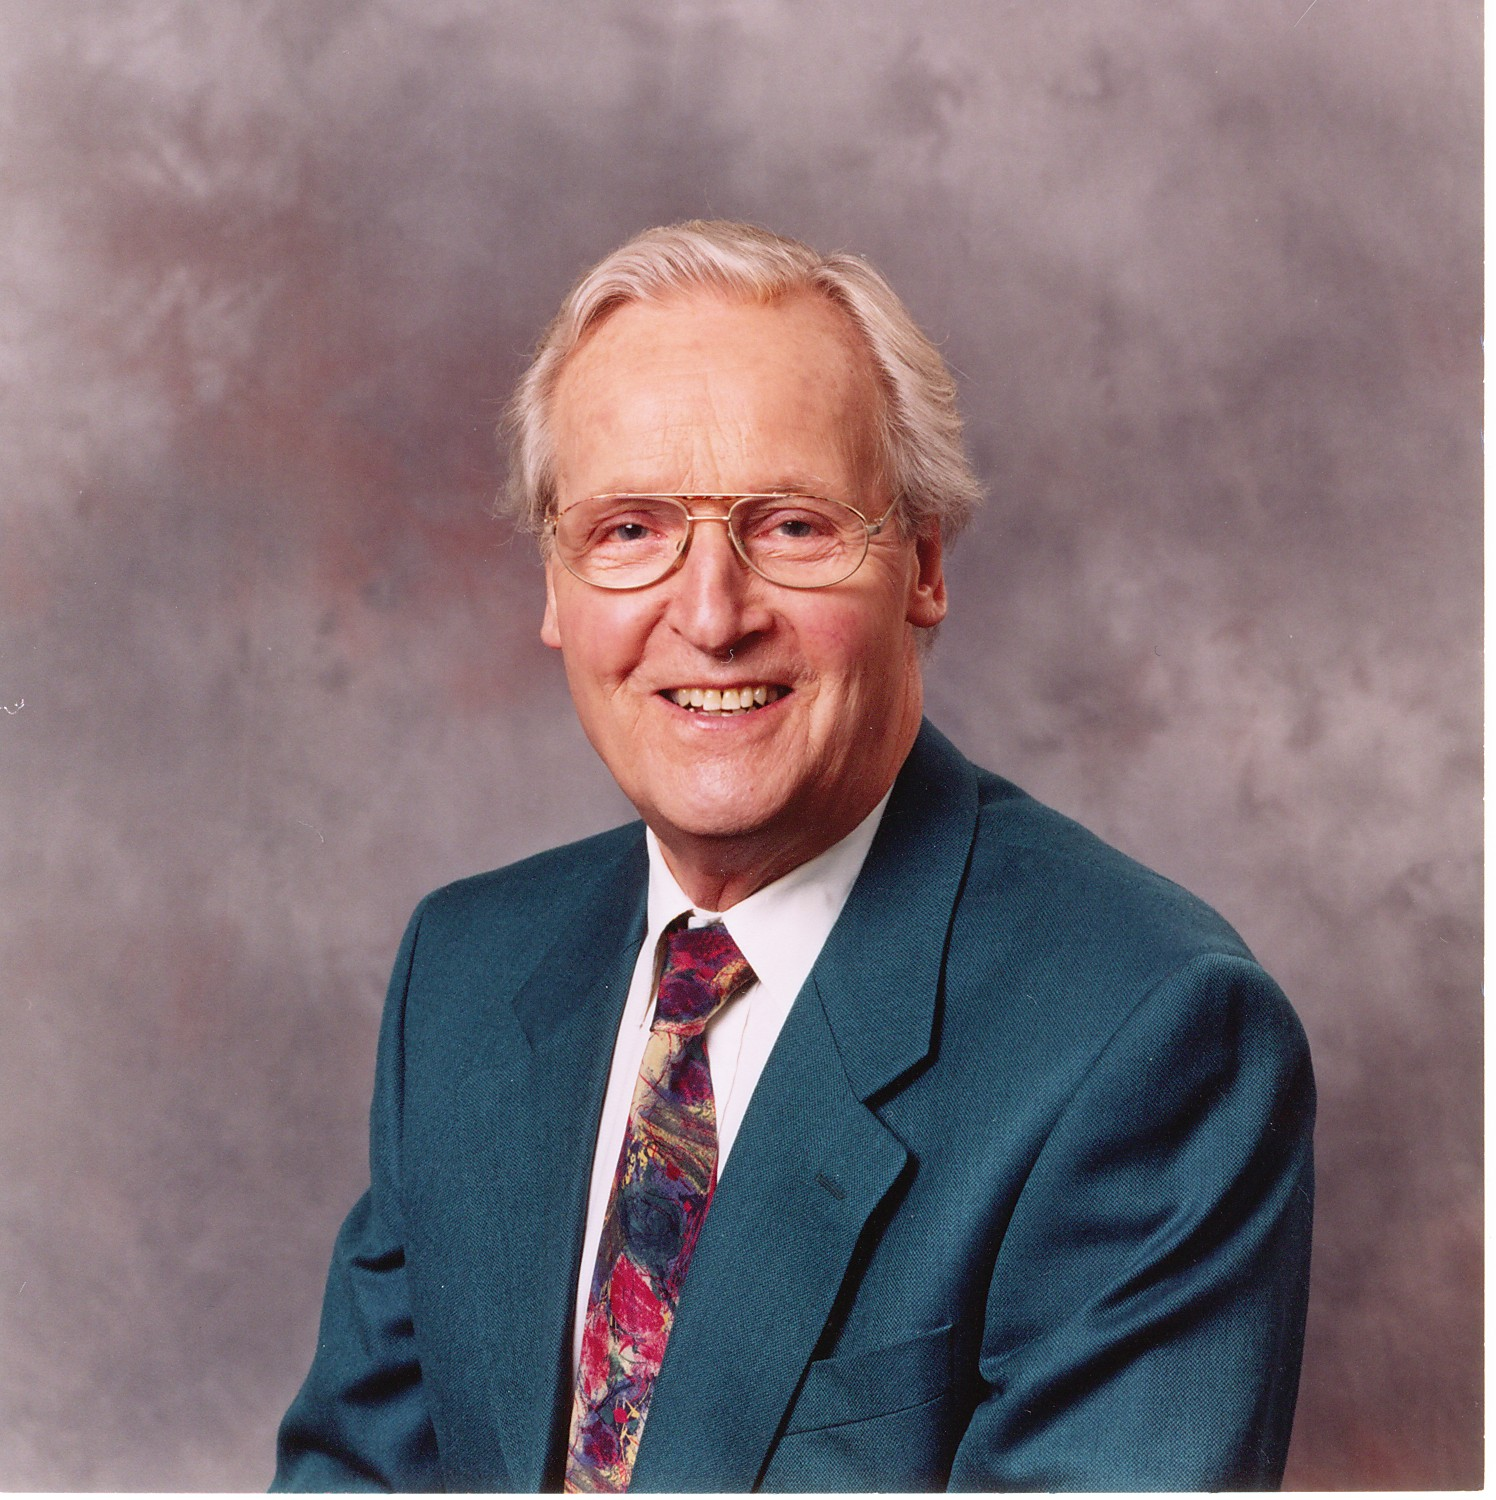 Nicholas Parsons - A Laugh A Minute